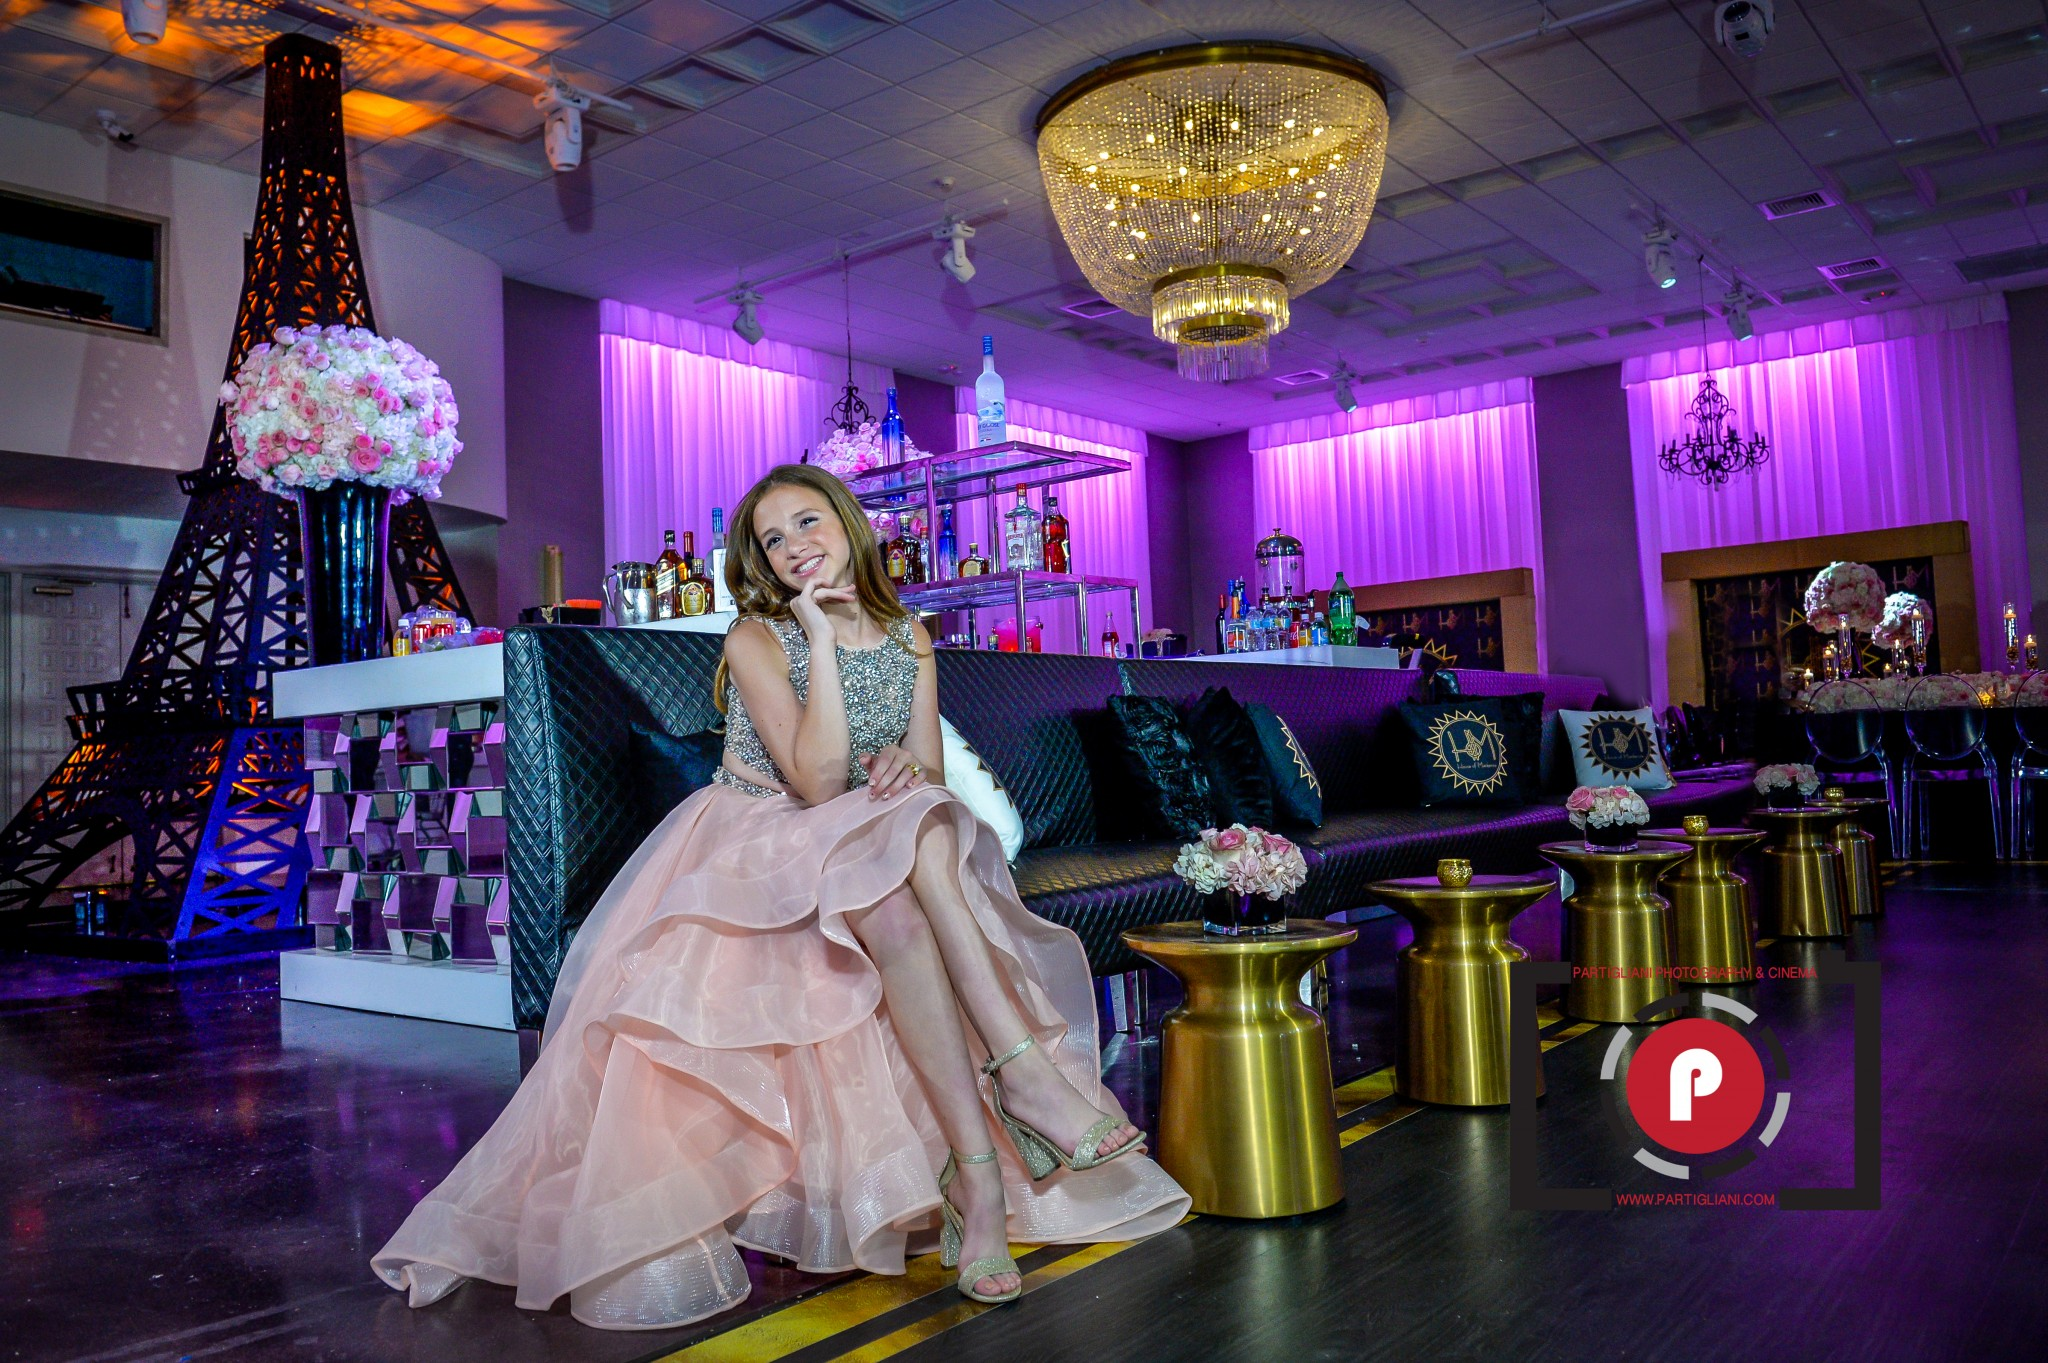 MACKENZIE BEHLMAN BAT MITZVAH. TEMPLE BETH SHALOM, MIAMI BEACH. EMANUEL LUXURY VENUE, LIFE OF THE PARTY EVENTS – DESIGN & PRODUCTIONS, TRIPLE P ENTERTAINMENT, ELV CATERING. KEEP STILT WALKING.